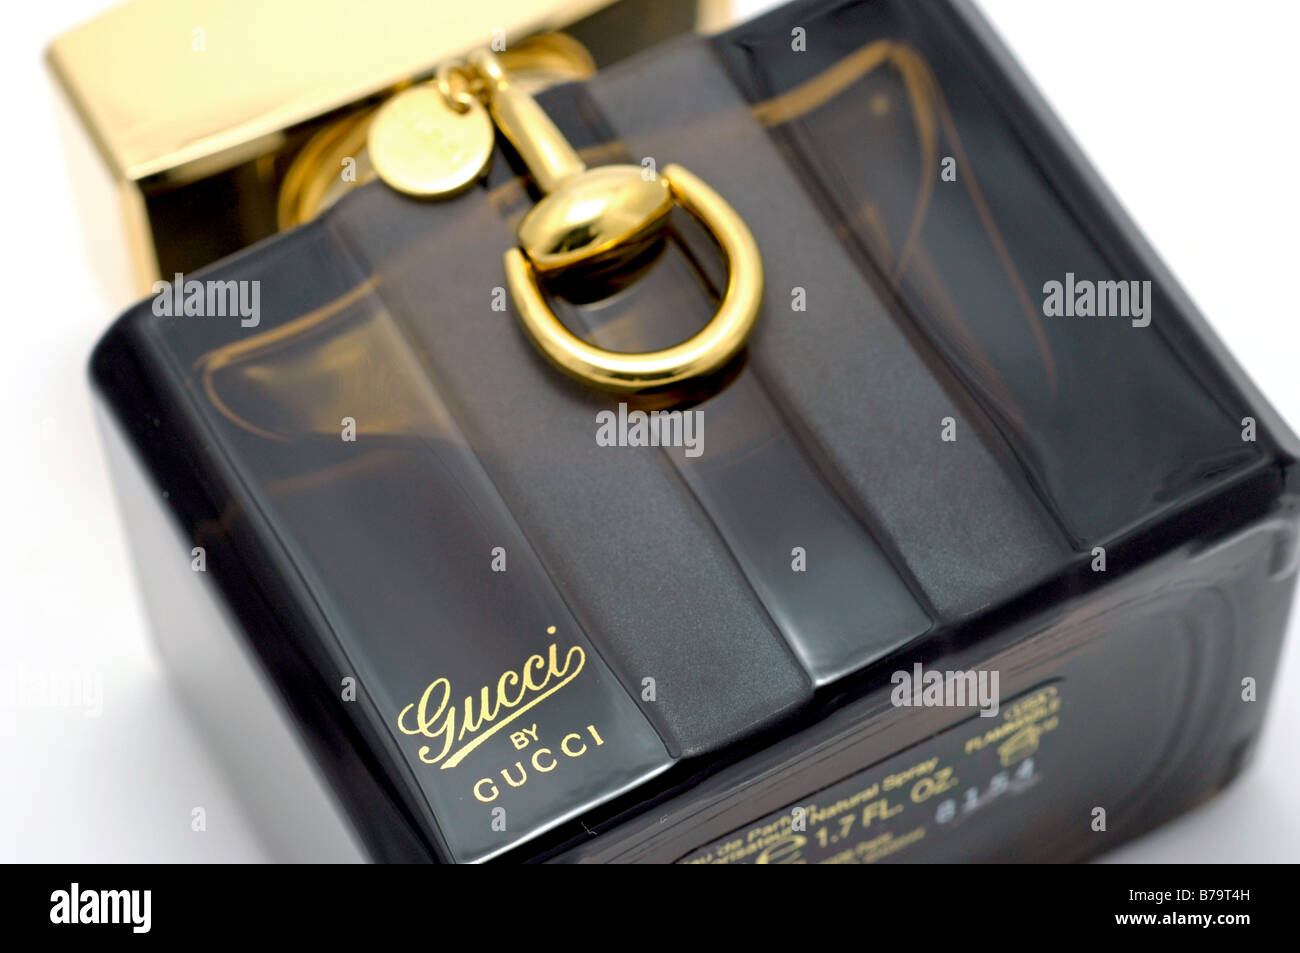 Bottle of Gucci by Gucci perfume - Stock Image